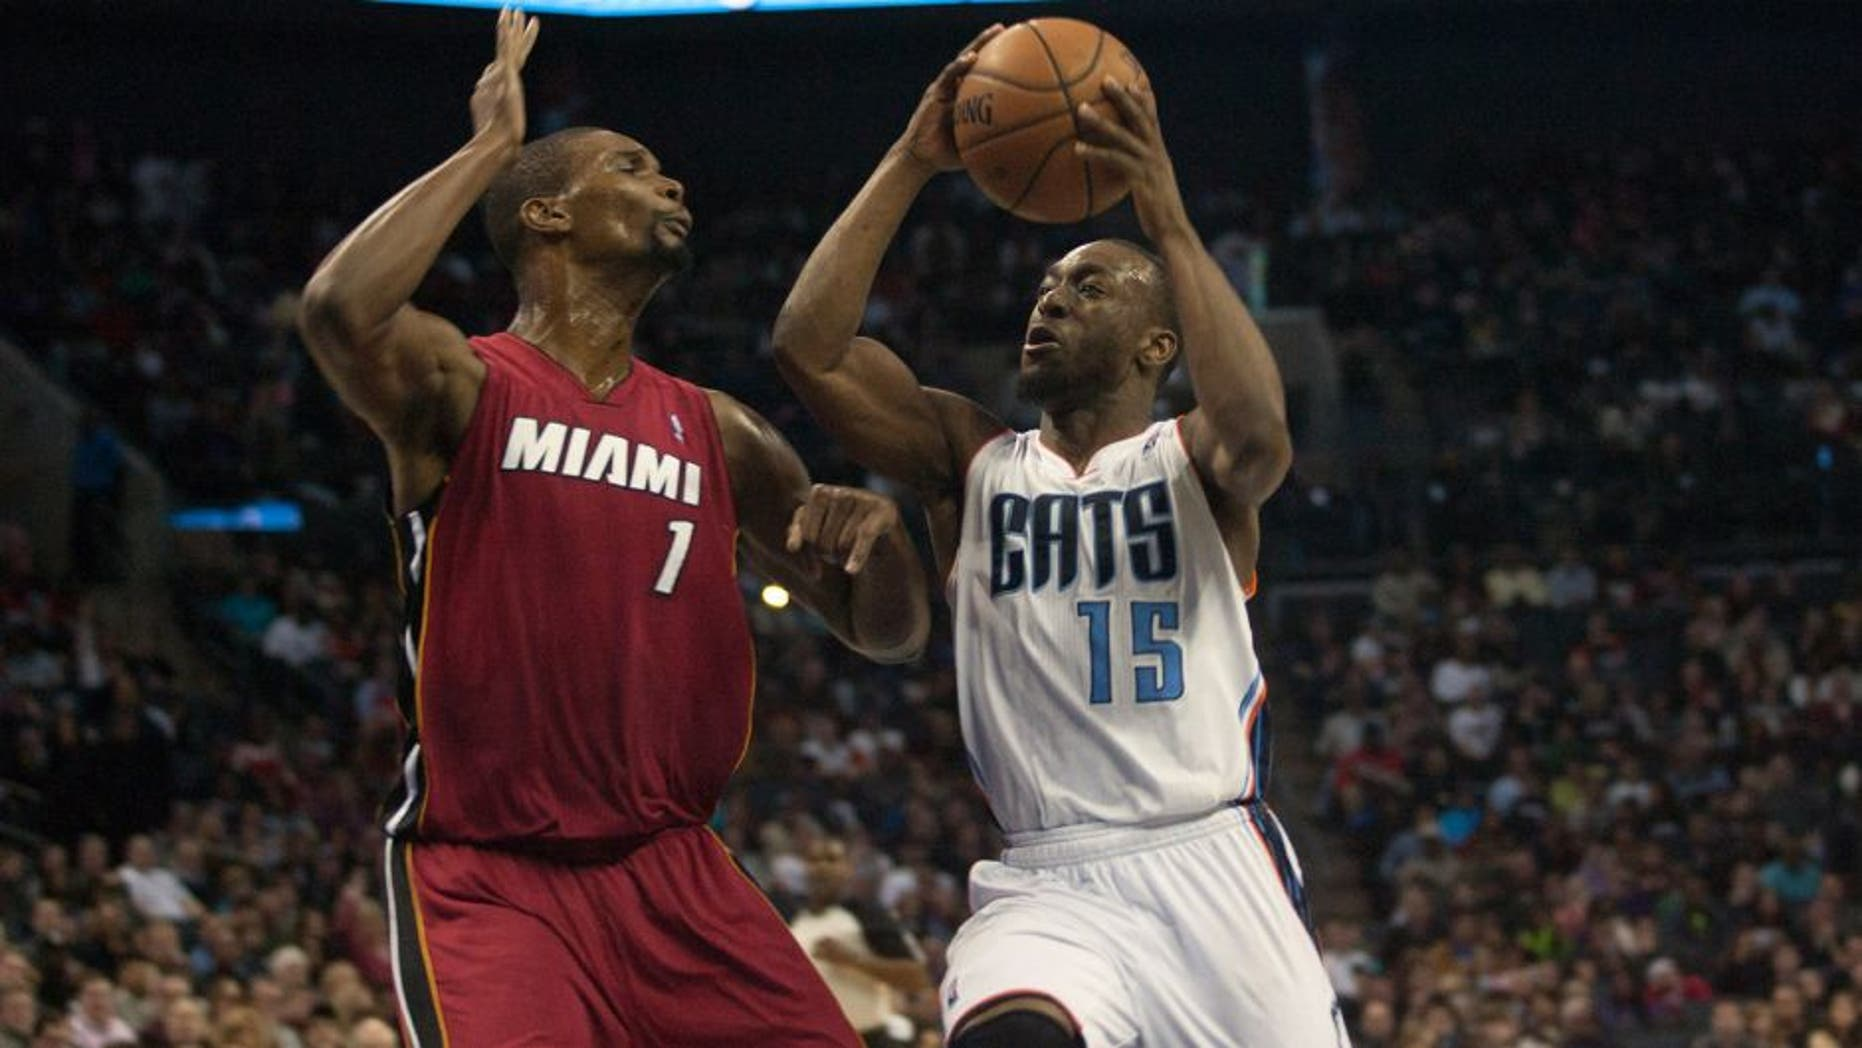 Jan 18, 2014; Charlotte, NC, USA; Charlotte Bobcats point guard Kemba Walker (15) goes up for a shot over Miami Heat center Chris Bosh (1) during the second half at Time Warner Cable Arena. The Heat defeated the Bobcats 104-96 in overtime. Mandatory Credit: Jeremy Brevard-USA TODAY Sports